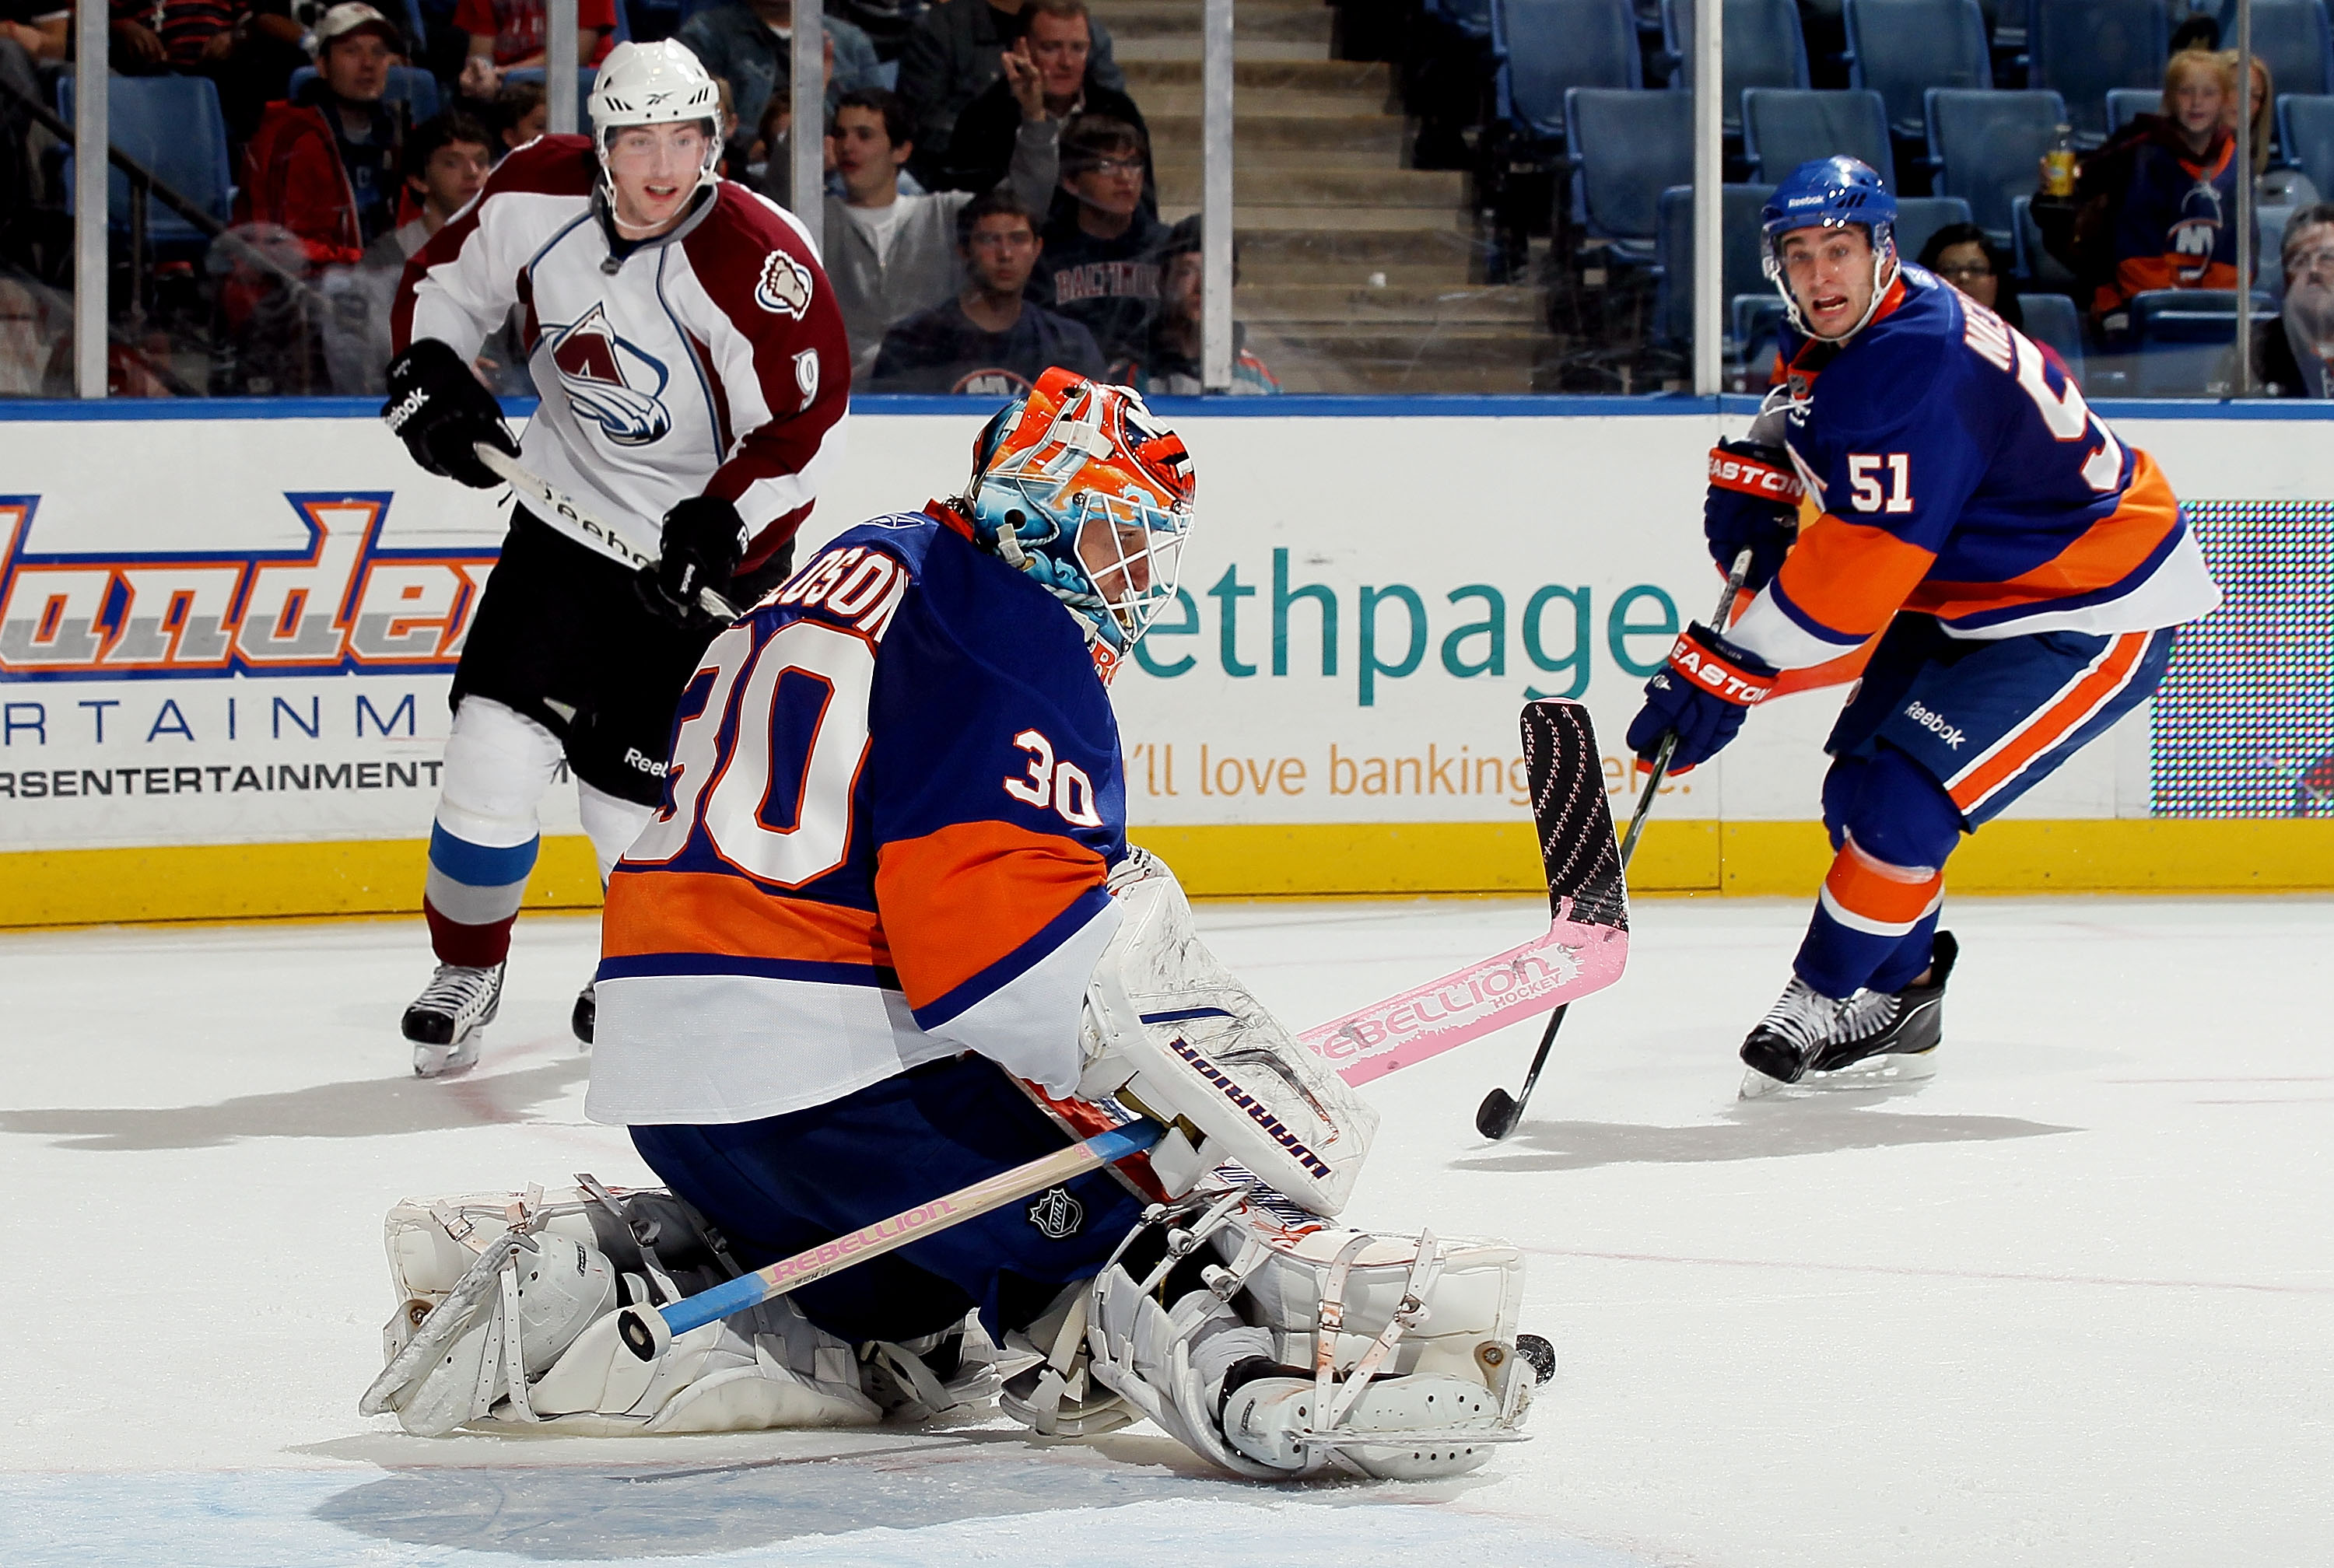 UNIONDALE, NY - OCTOBER 16:  Dwayne Roloson #30 of the New York Islanders makes a save against the Colorado Avalanche on October 16, 2010 at Nassau Coliseum in Uniondale, New York. The Isles defeated the Avalanche 5-2.  (Photo by Jim McIsaac/Getty Images)